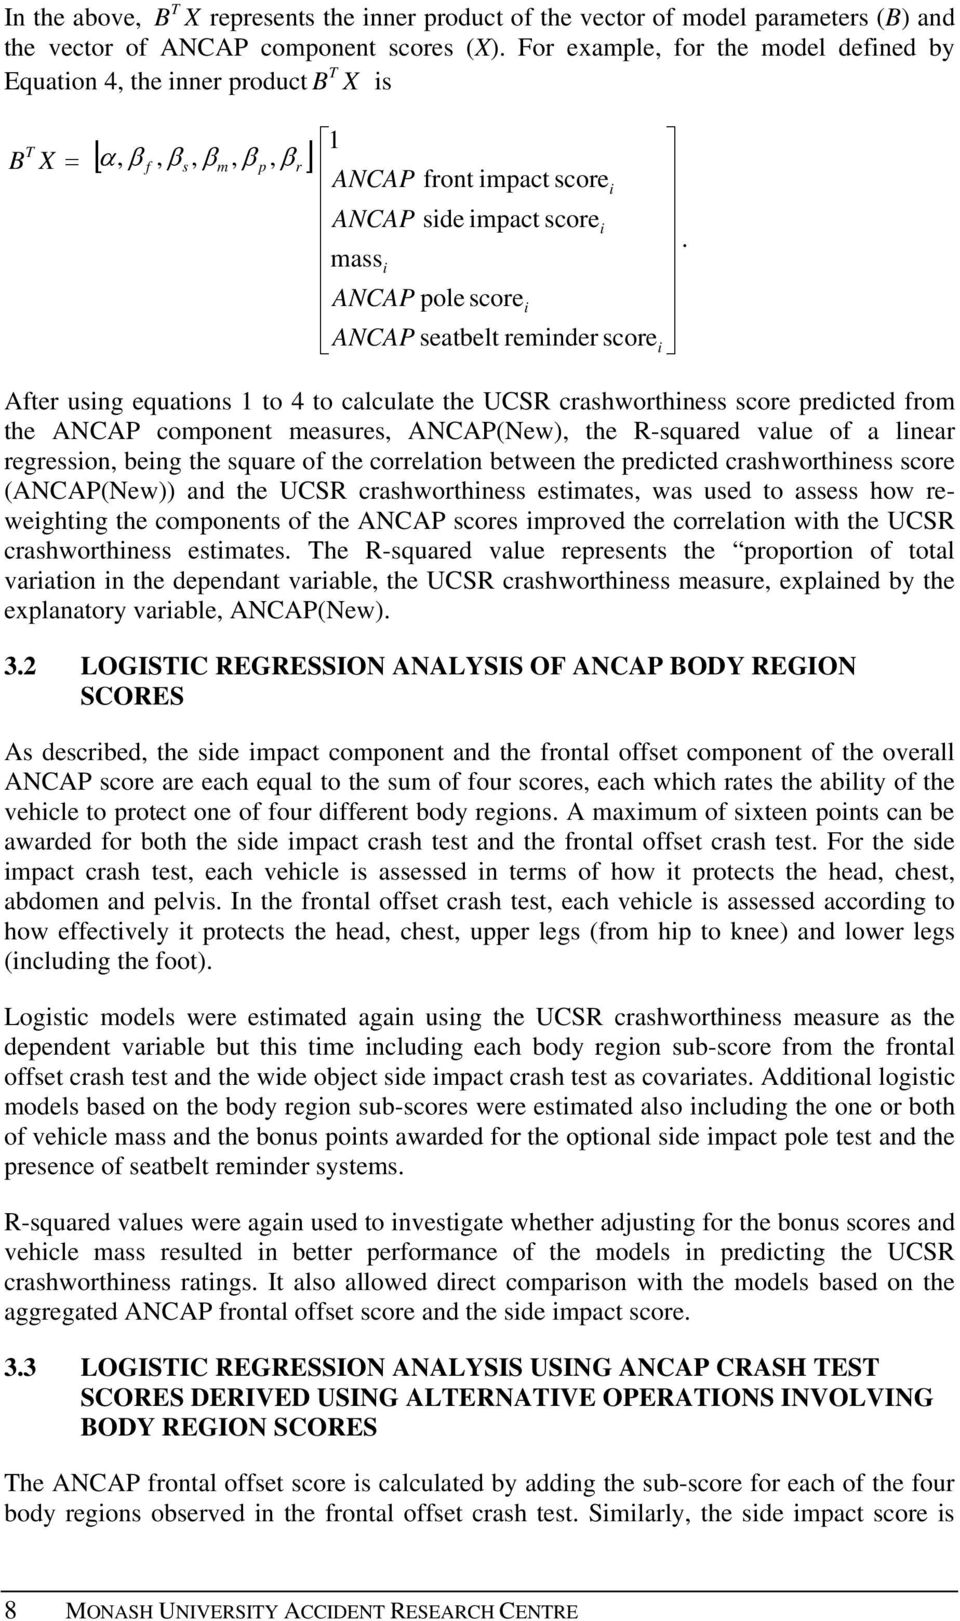 massi ANCAP pole score i ANCAP seatbelt reminder scorei After using equations 1 to 4 to calculate the UCSR crashworthiness score predicted from the ANCAP component measures, ANCAP(New), the R-squared